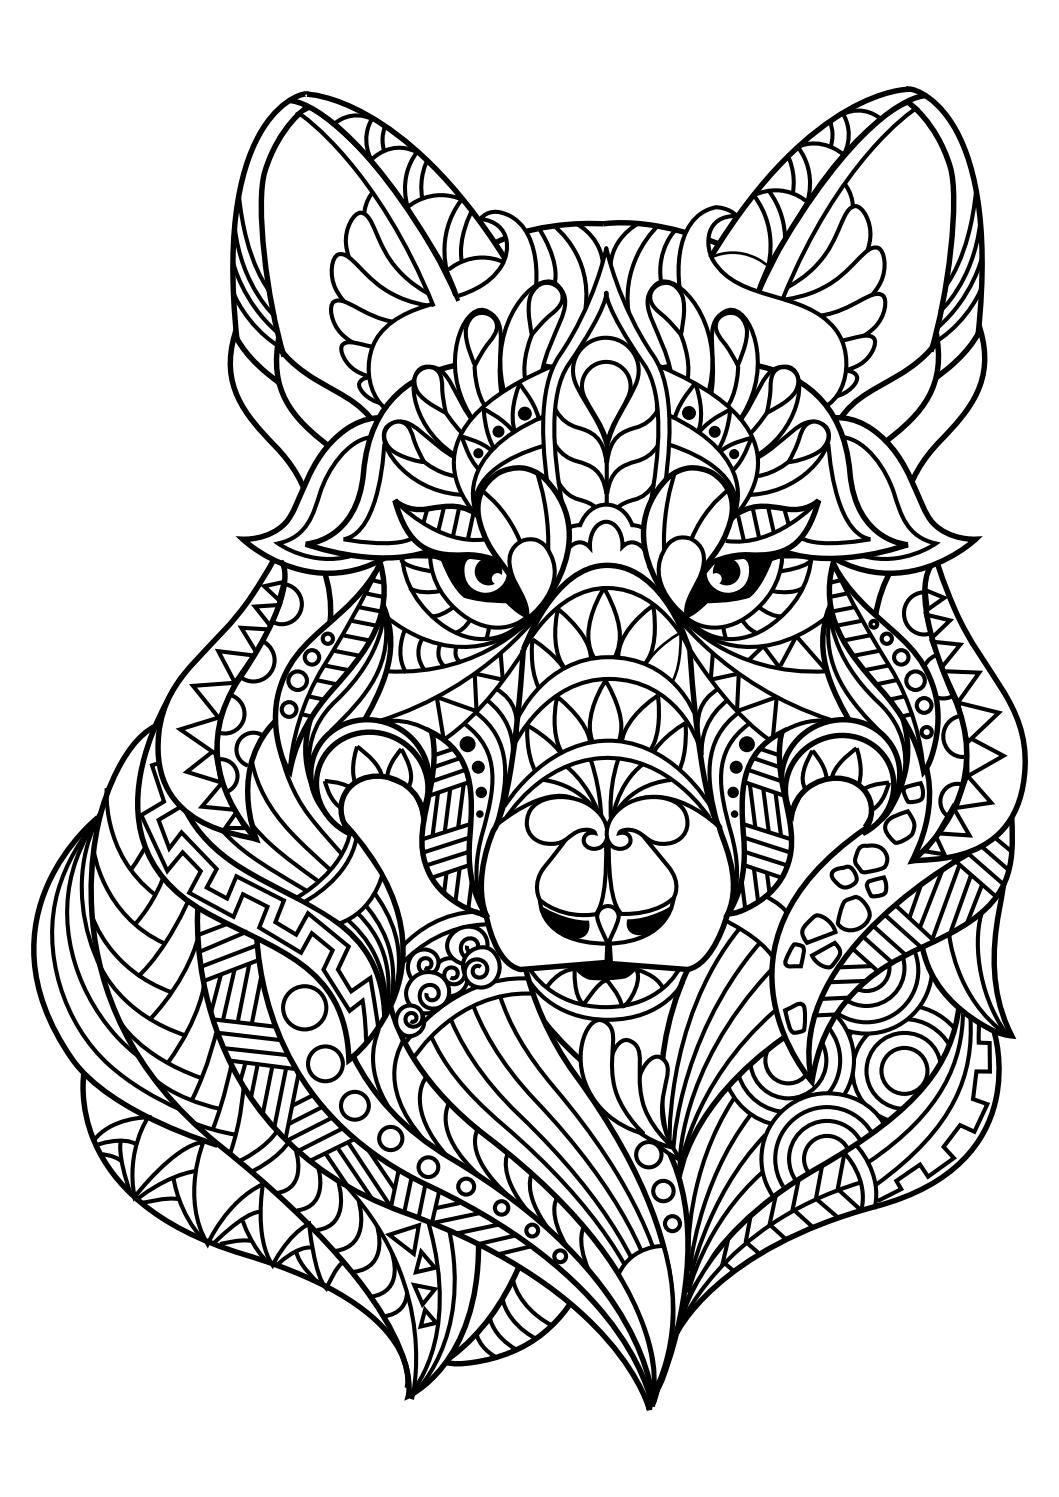 1059x1497 Gallery Mindfulness Coloring Pages Pdf